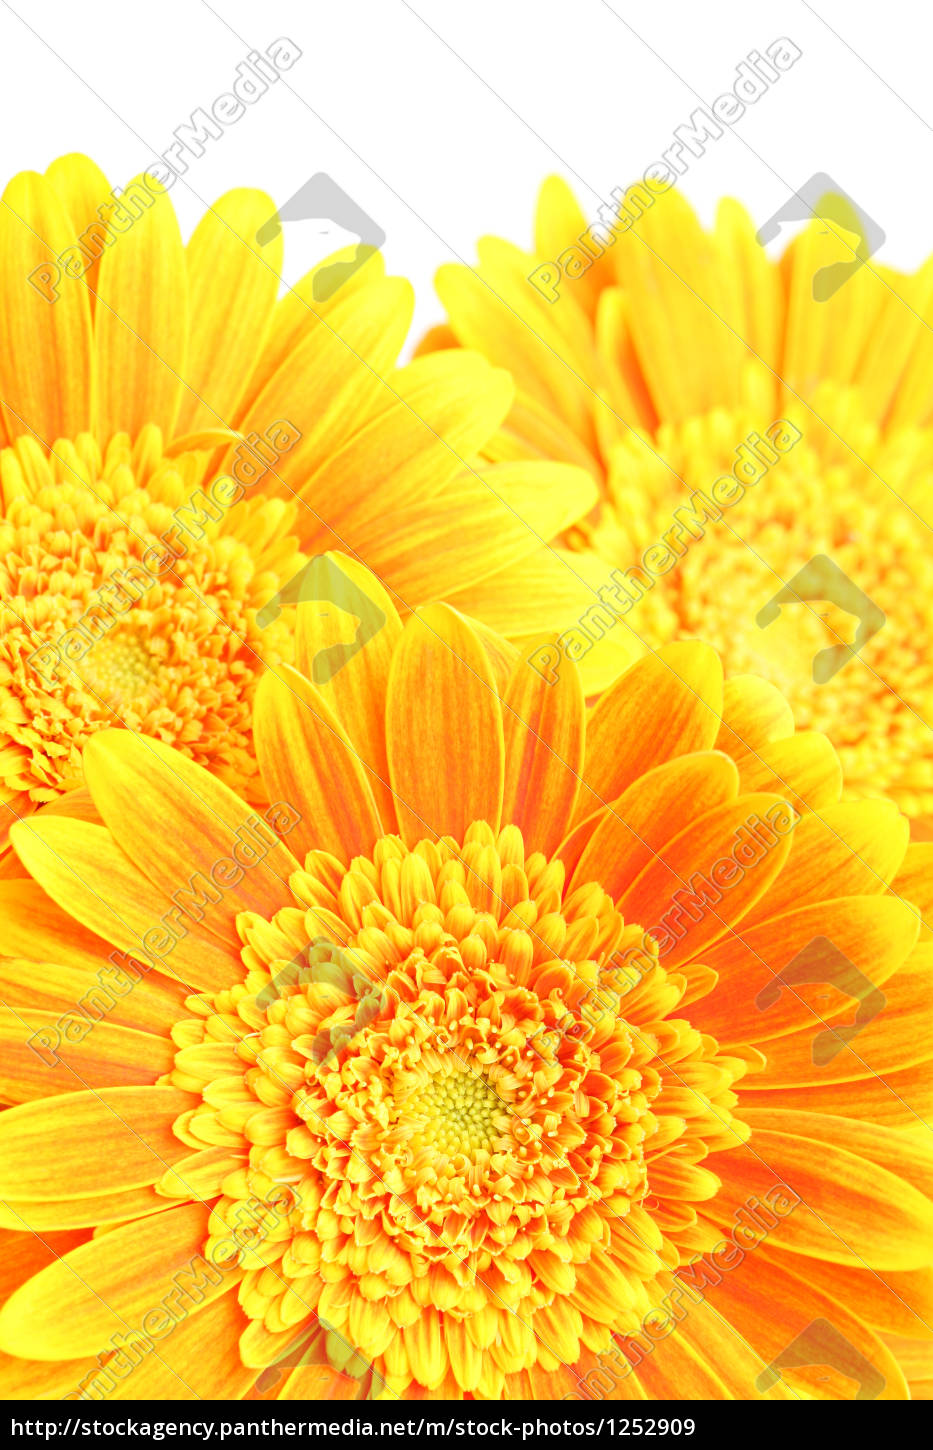 flowers, background - 1252909